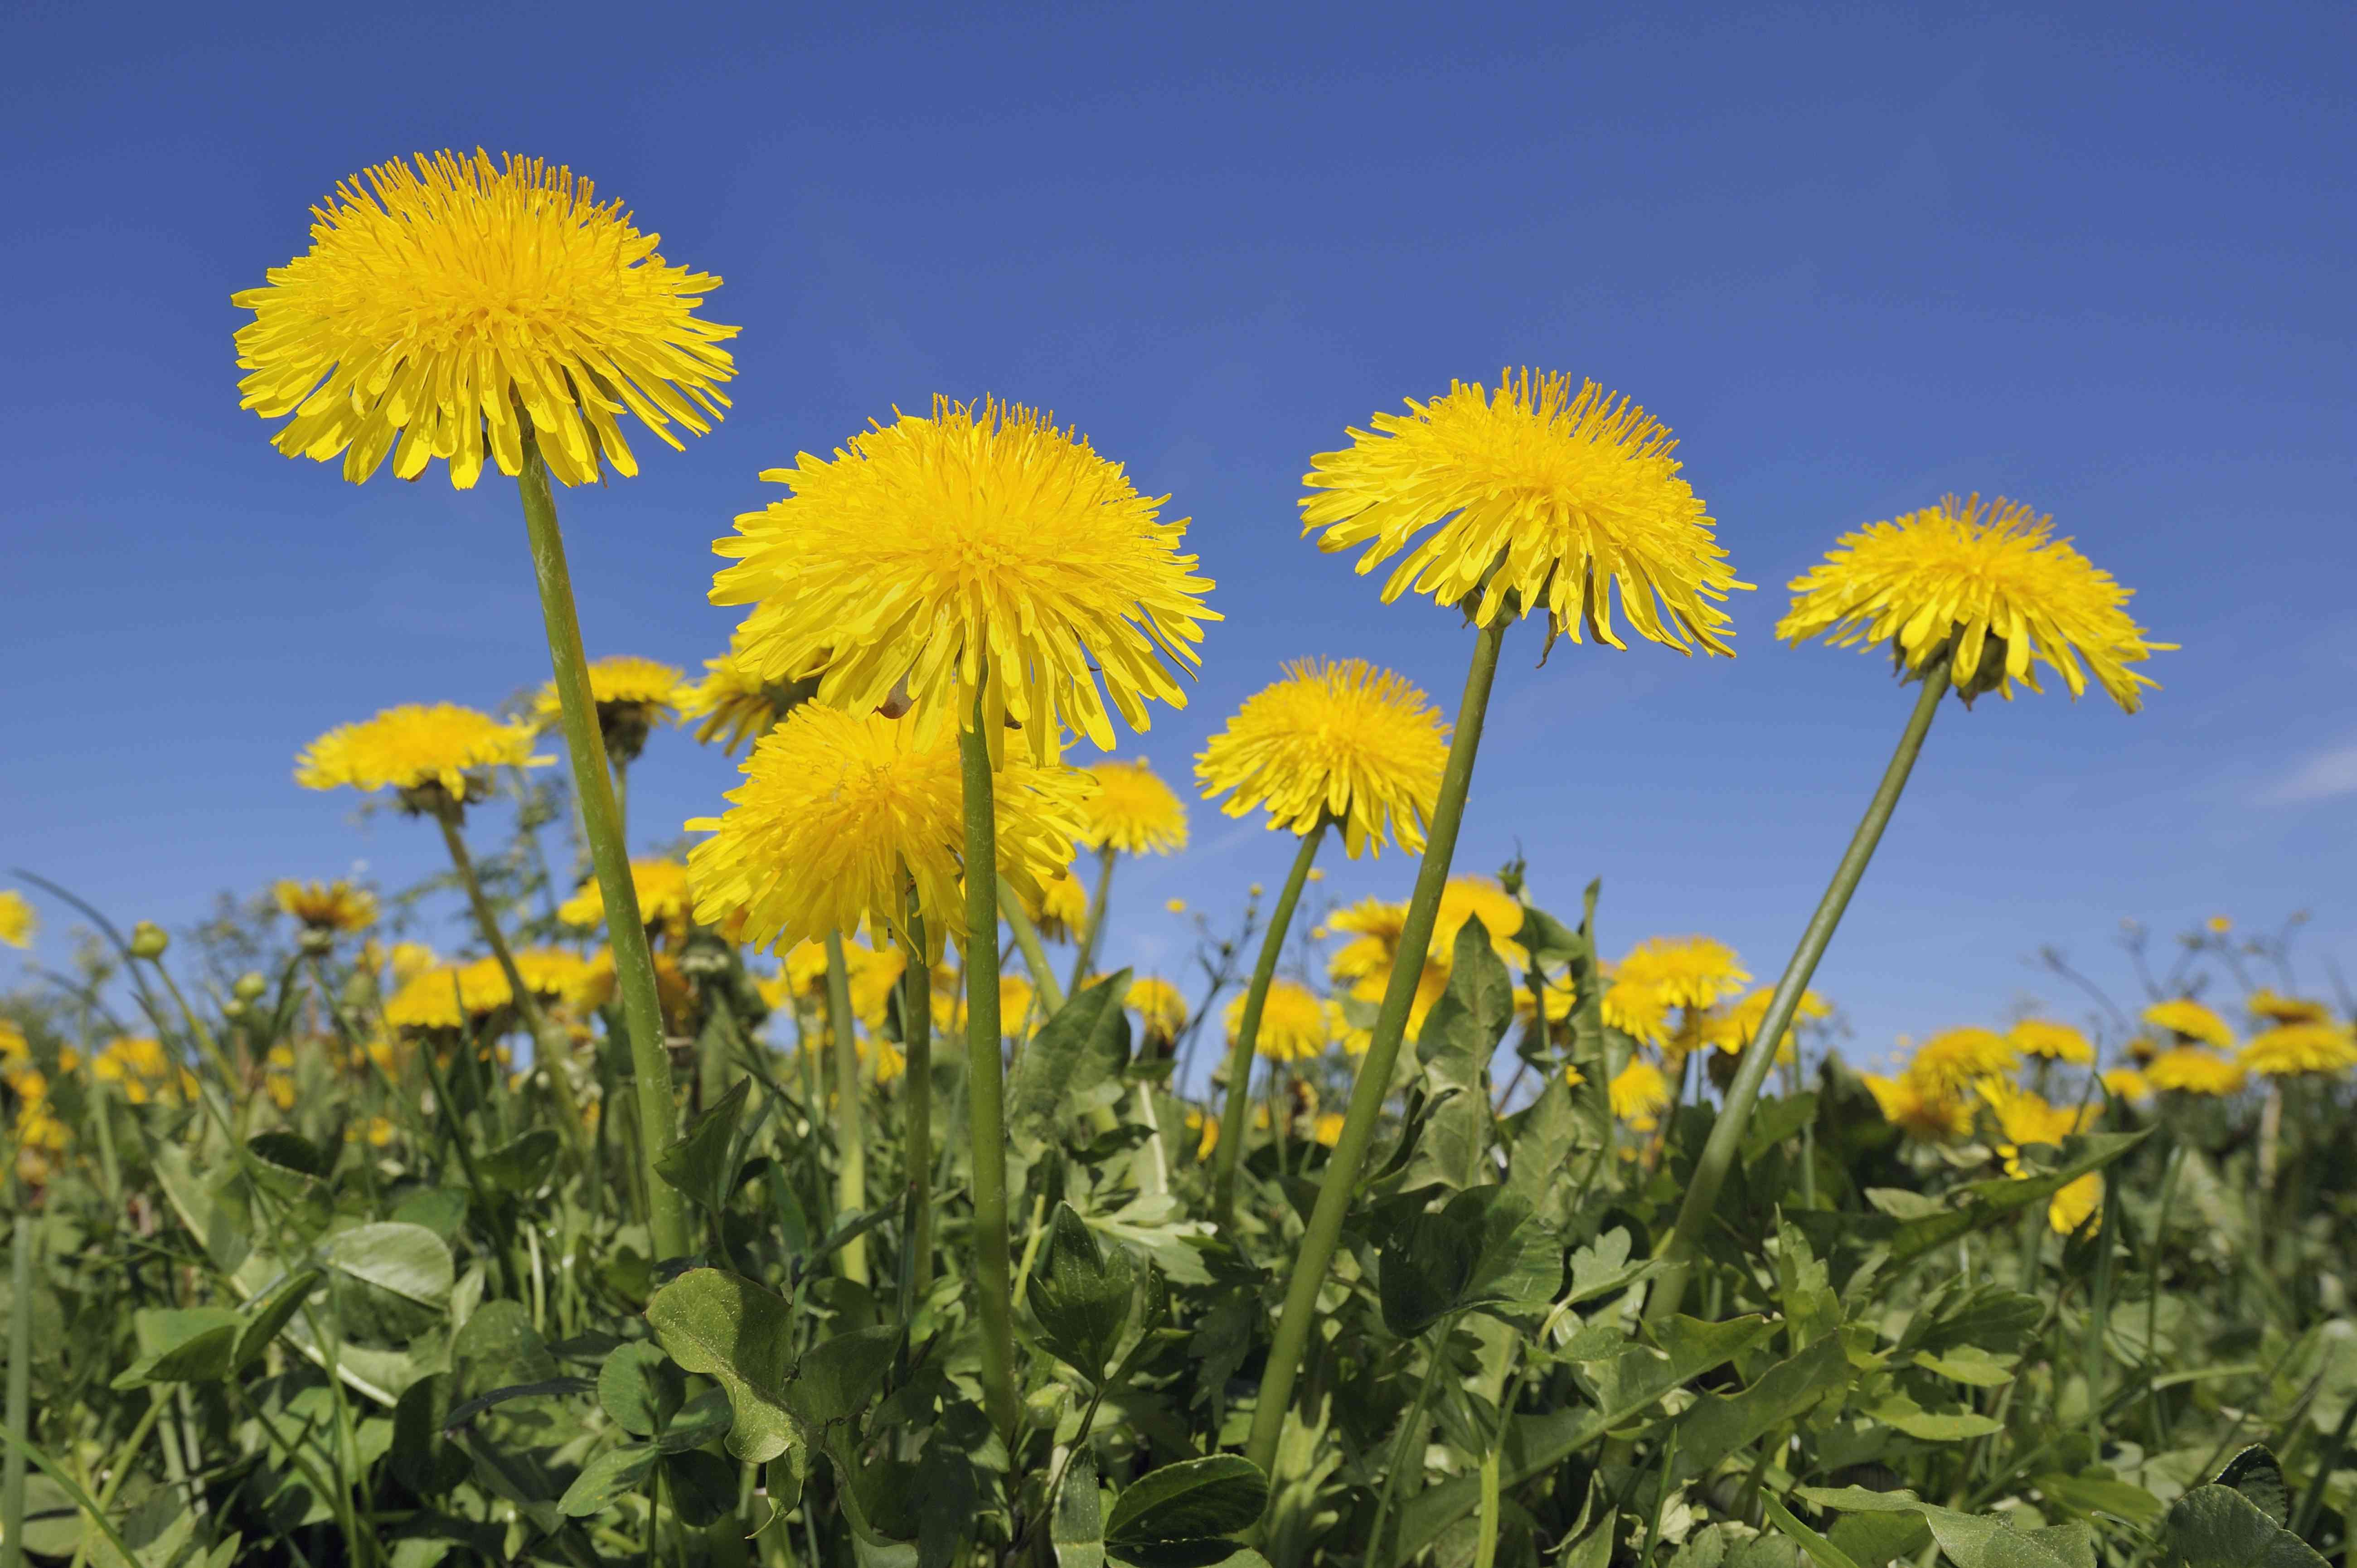 Low-angle view of dandelion meadow against blue sky